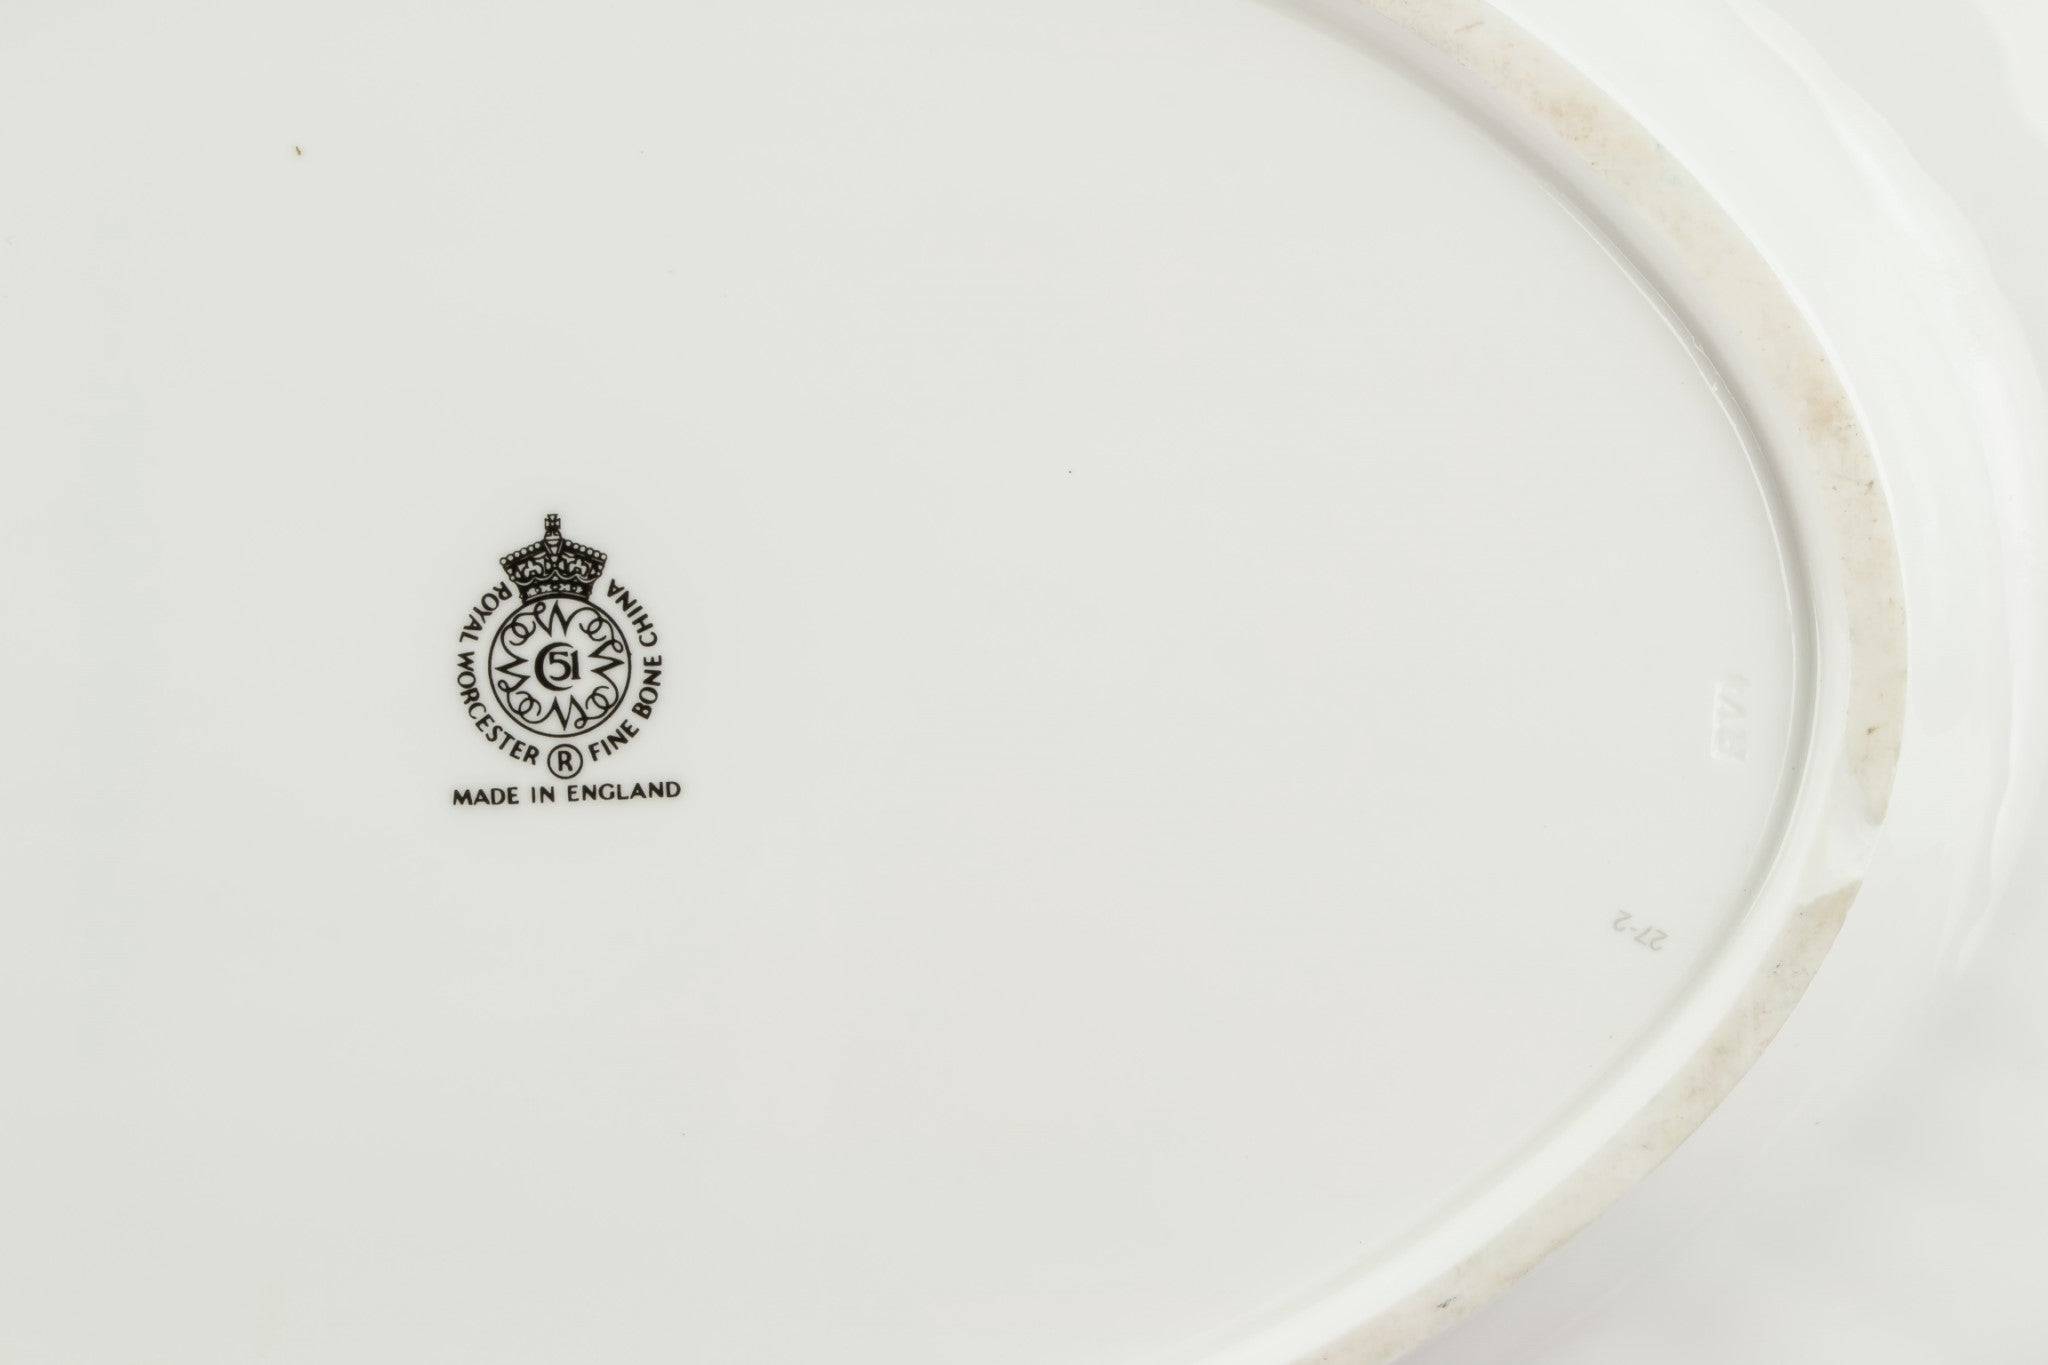 Retro bone china platter